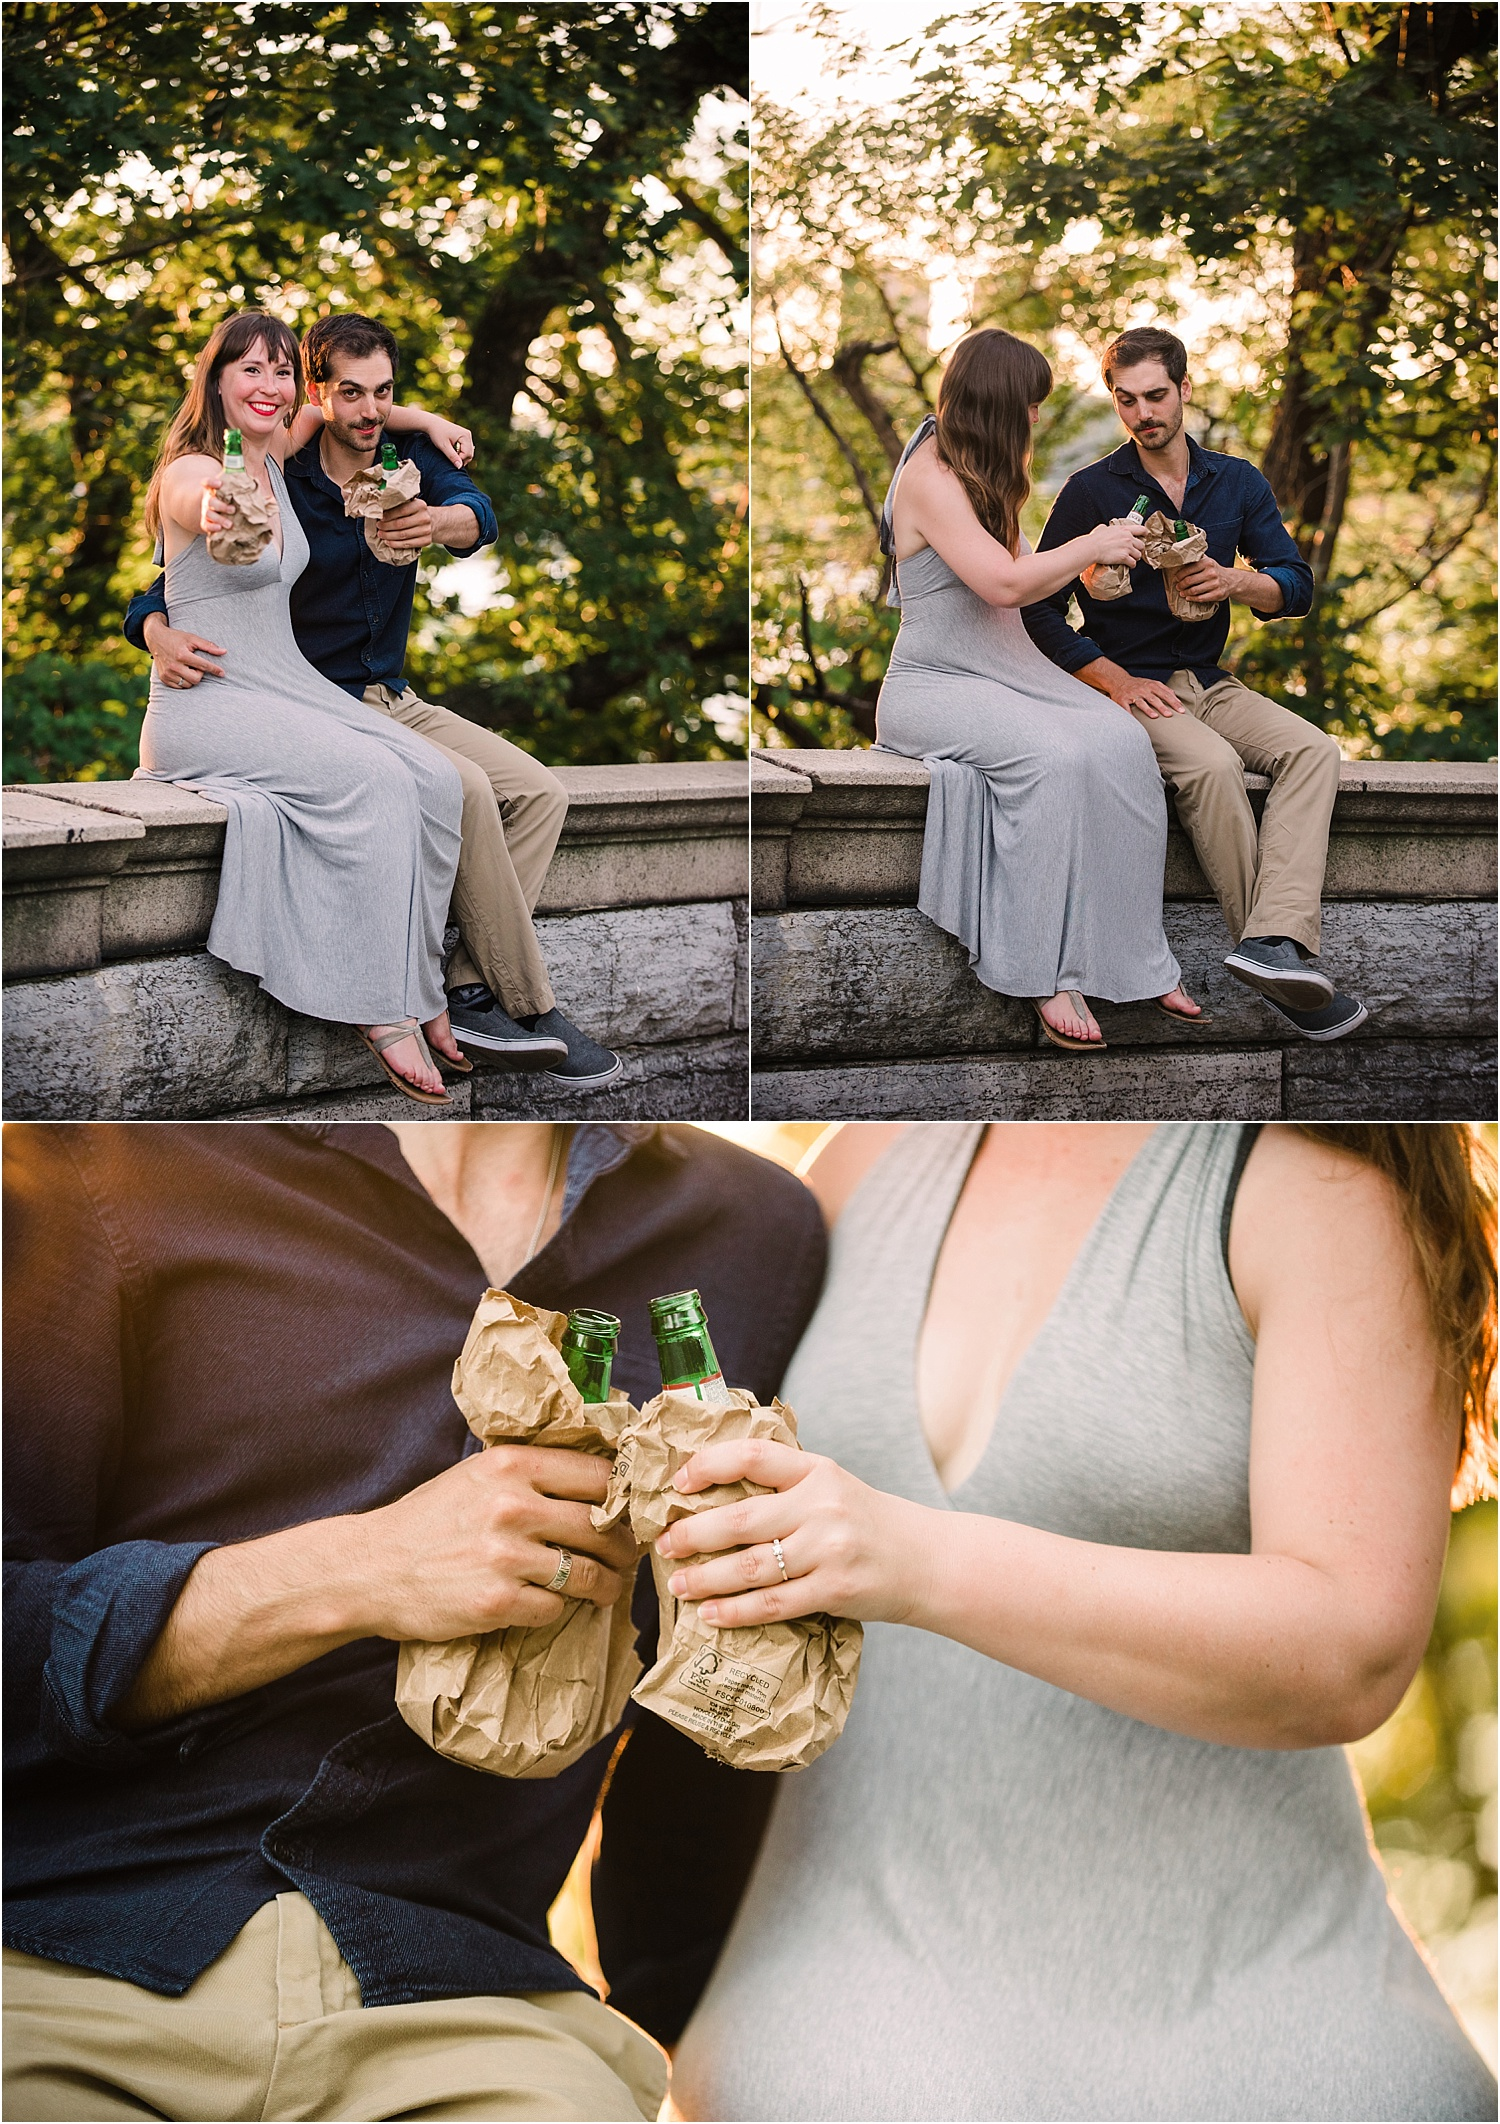 NYC_Engagement_Session_Harlem_Engaged_Photography_004.jpg